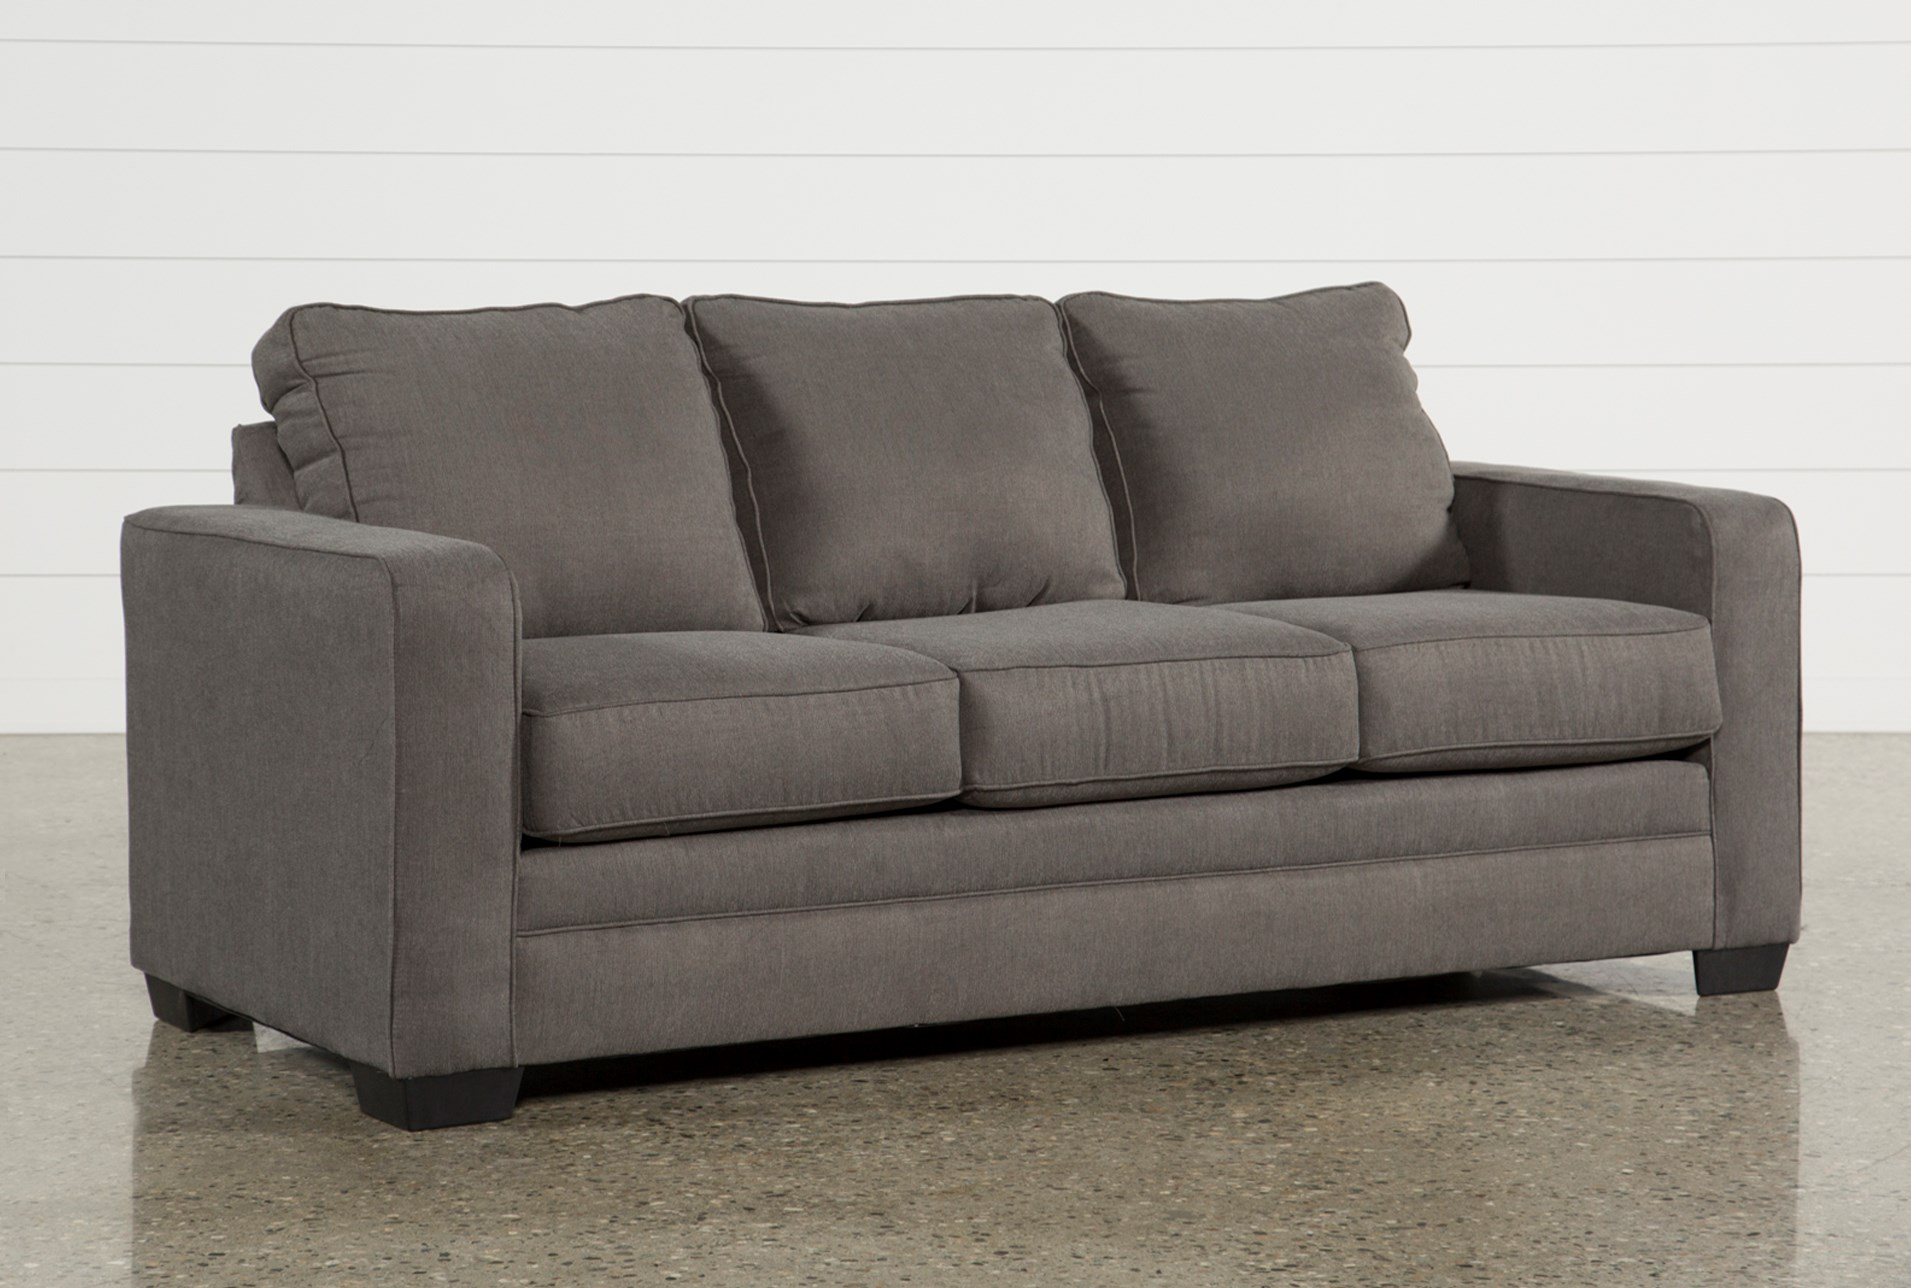 Carter Sofa Qty 1 Has Been Successfully Added To Your Cart